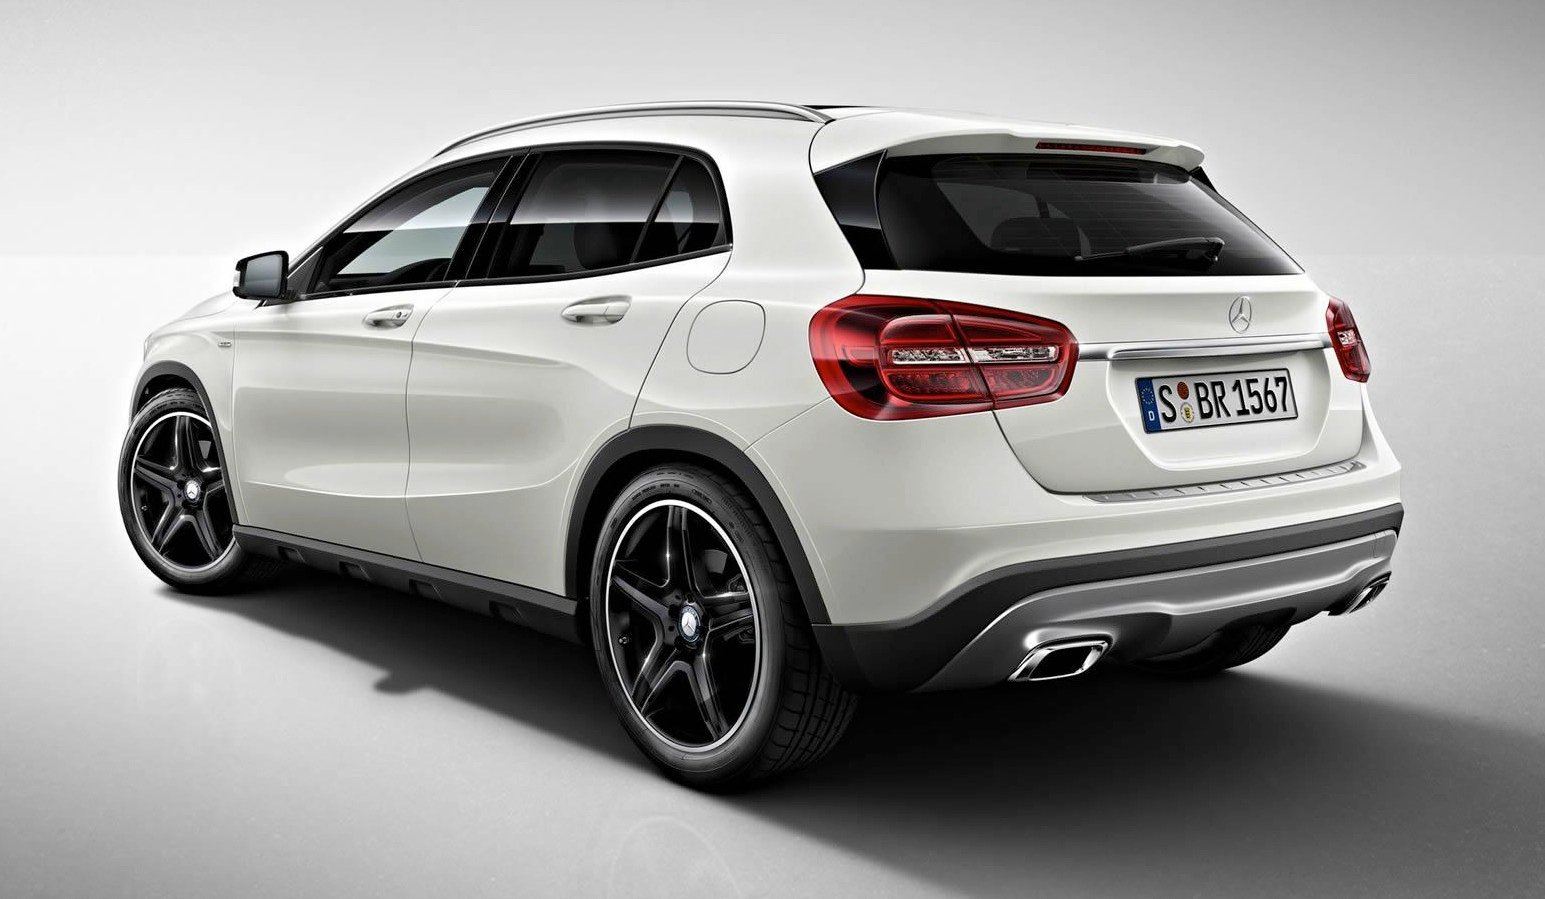 Mercedes benz gla edition 1 limited edition compact suv for Mercedes benz compact car